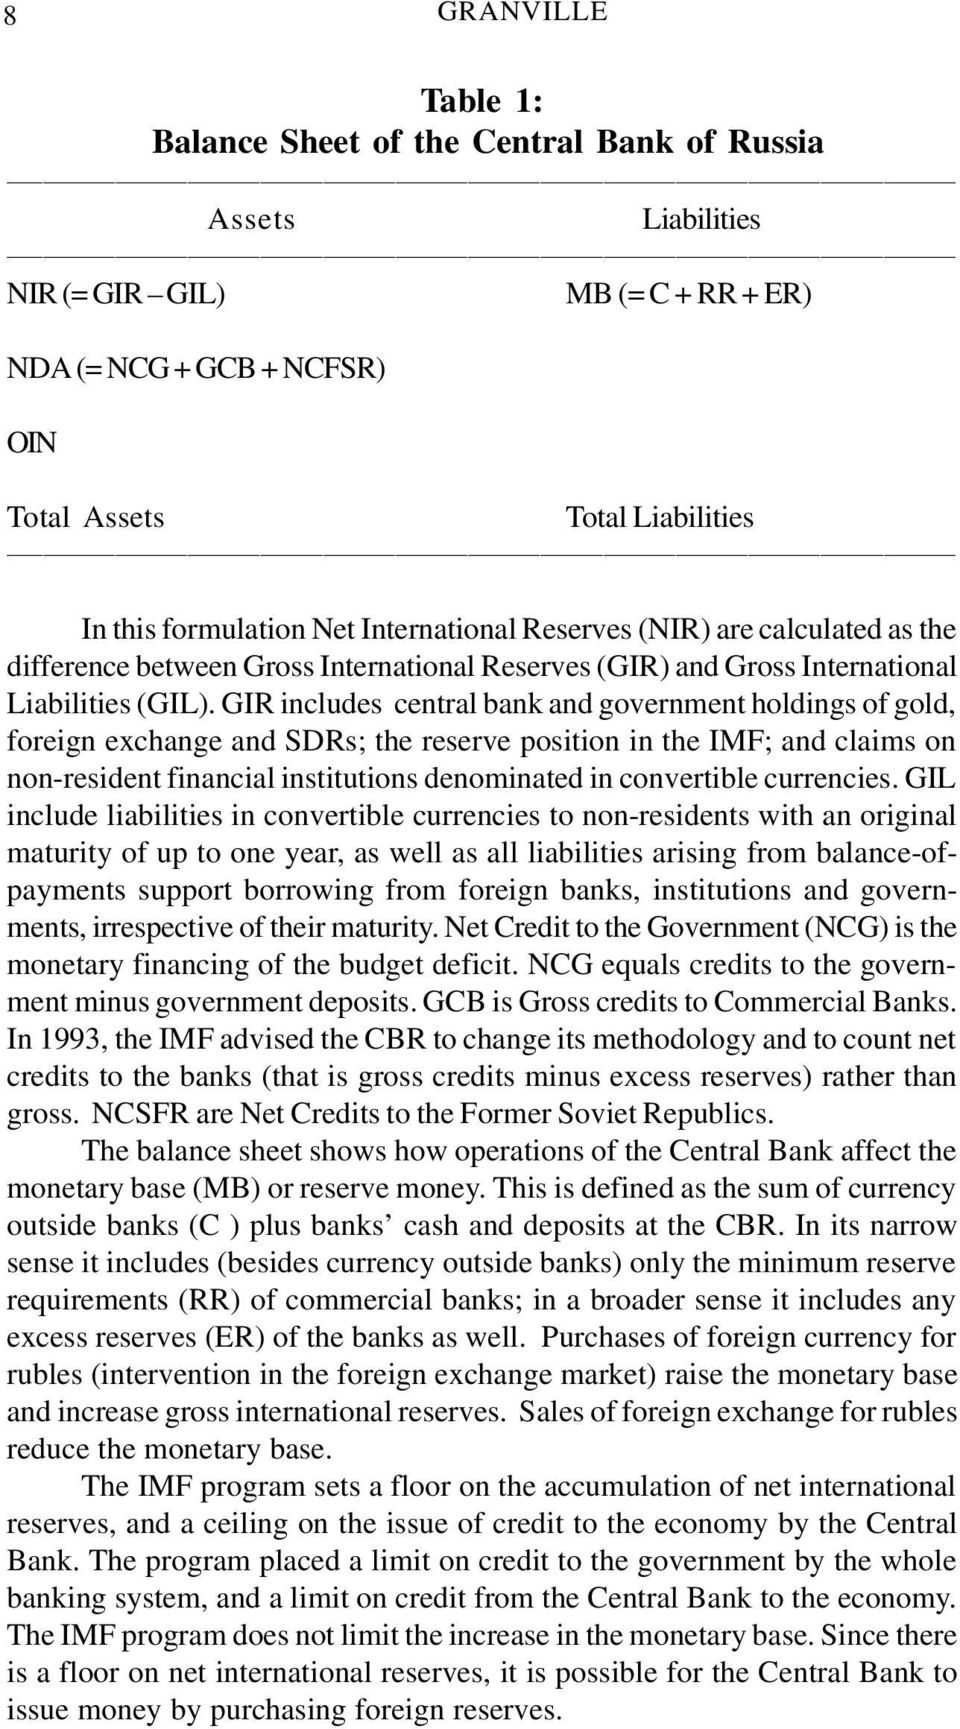 GIR includes central bank and government holdings of gold, foreign exchange and SDRs; the reserve position in the IMF; and claims on non-resident financial institutions denominated in convertible